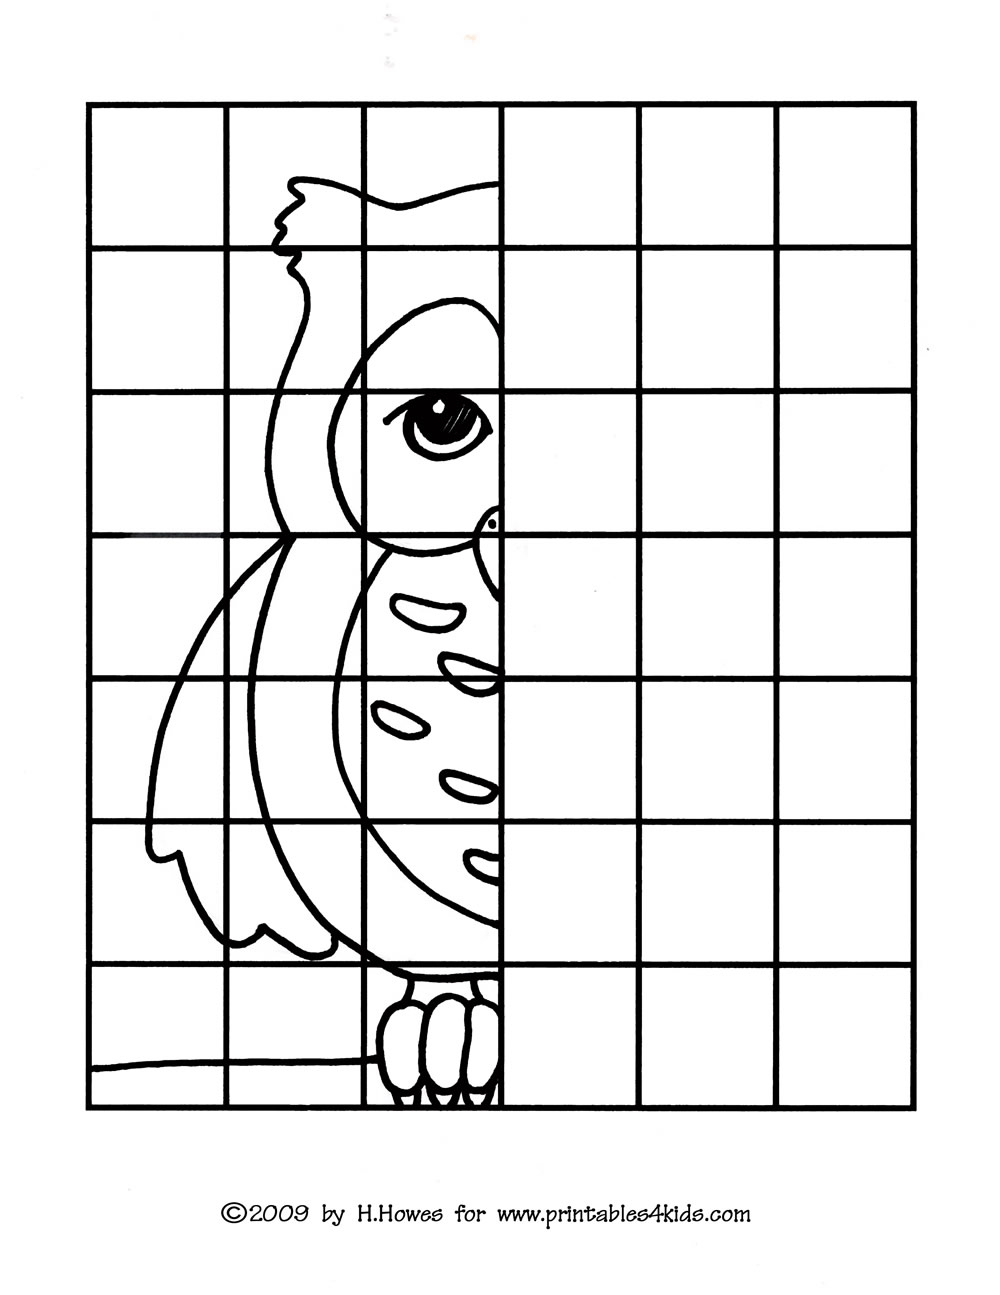 Word Search Coloring Pages To Print Owl Complete The Picture Drawing Printables For Kids Free Word